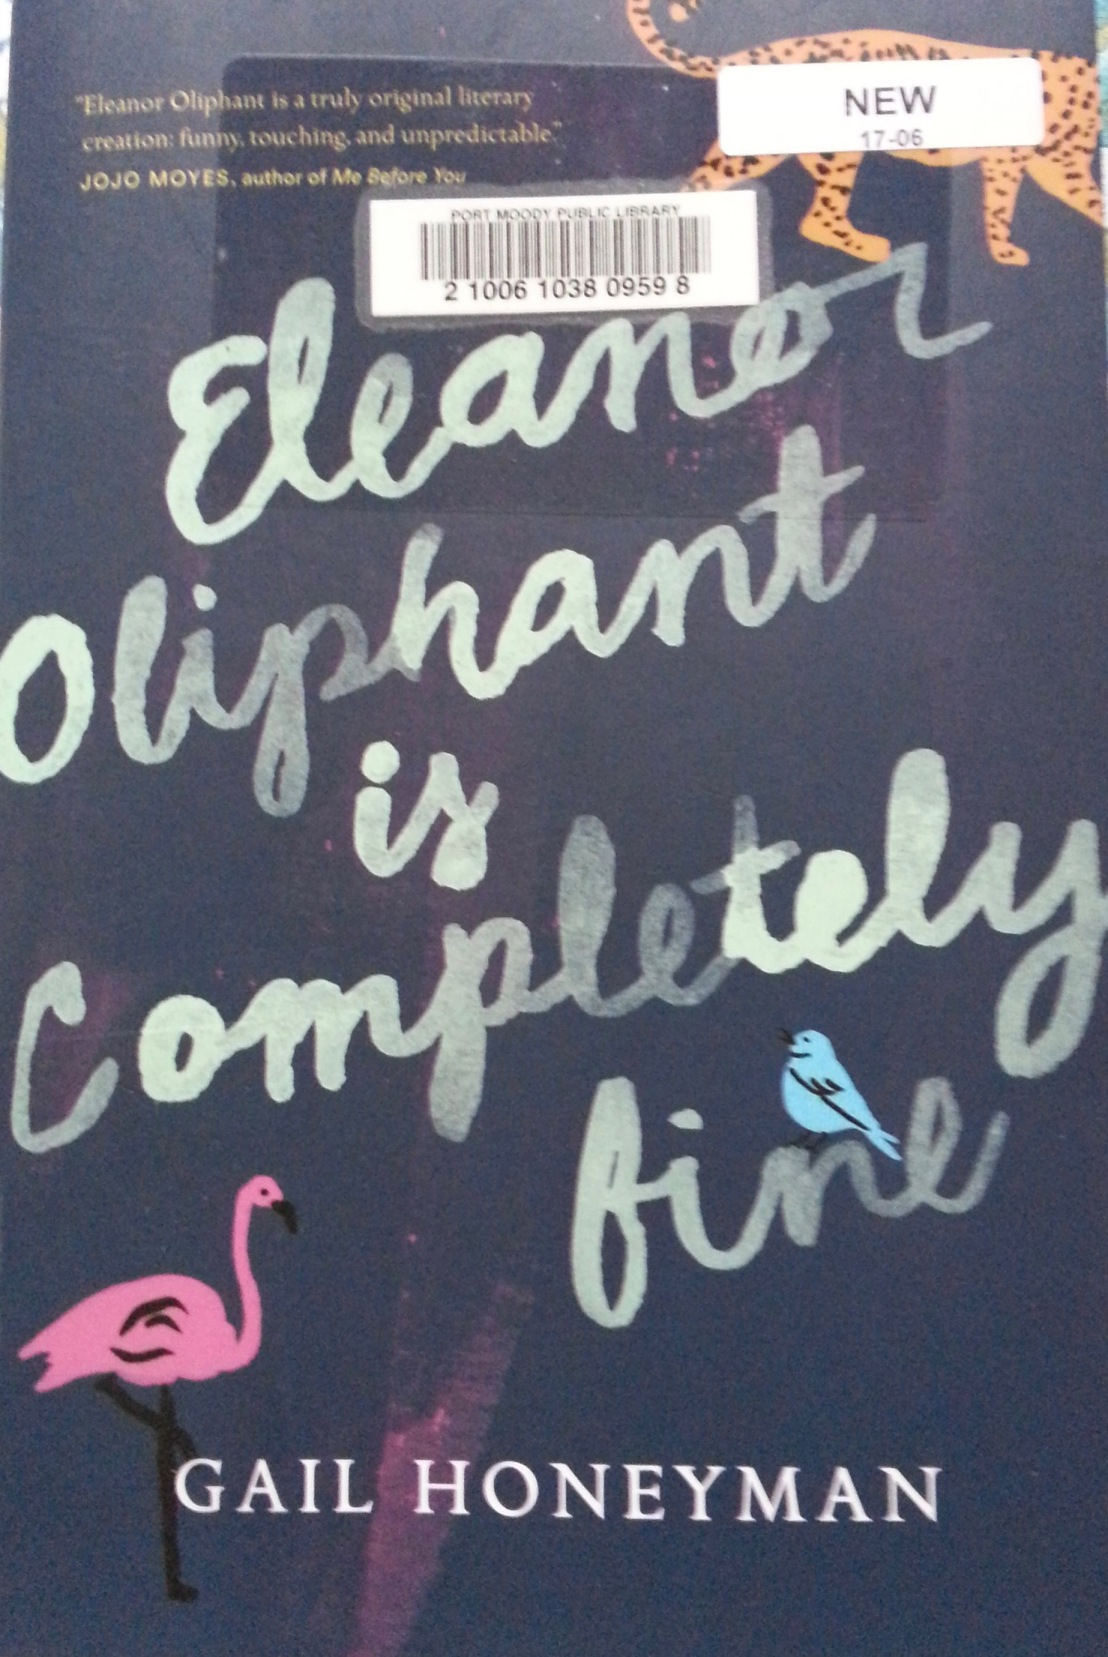 Gail Honeyman's — Eleanor Elephant is completely fine *****